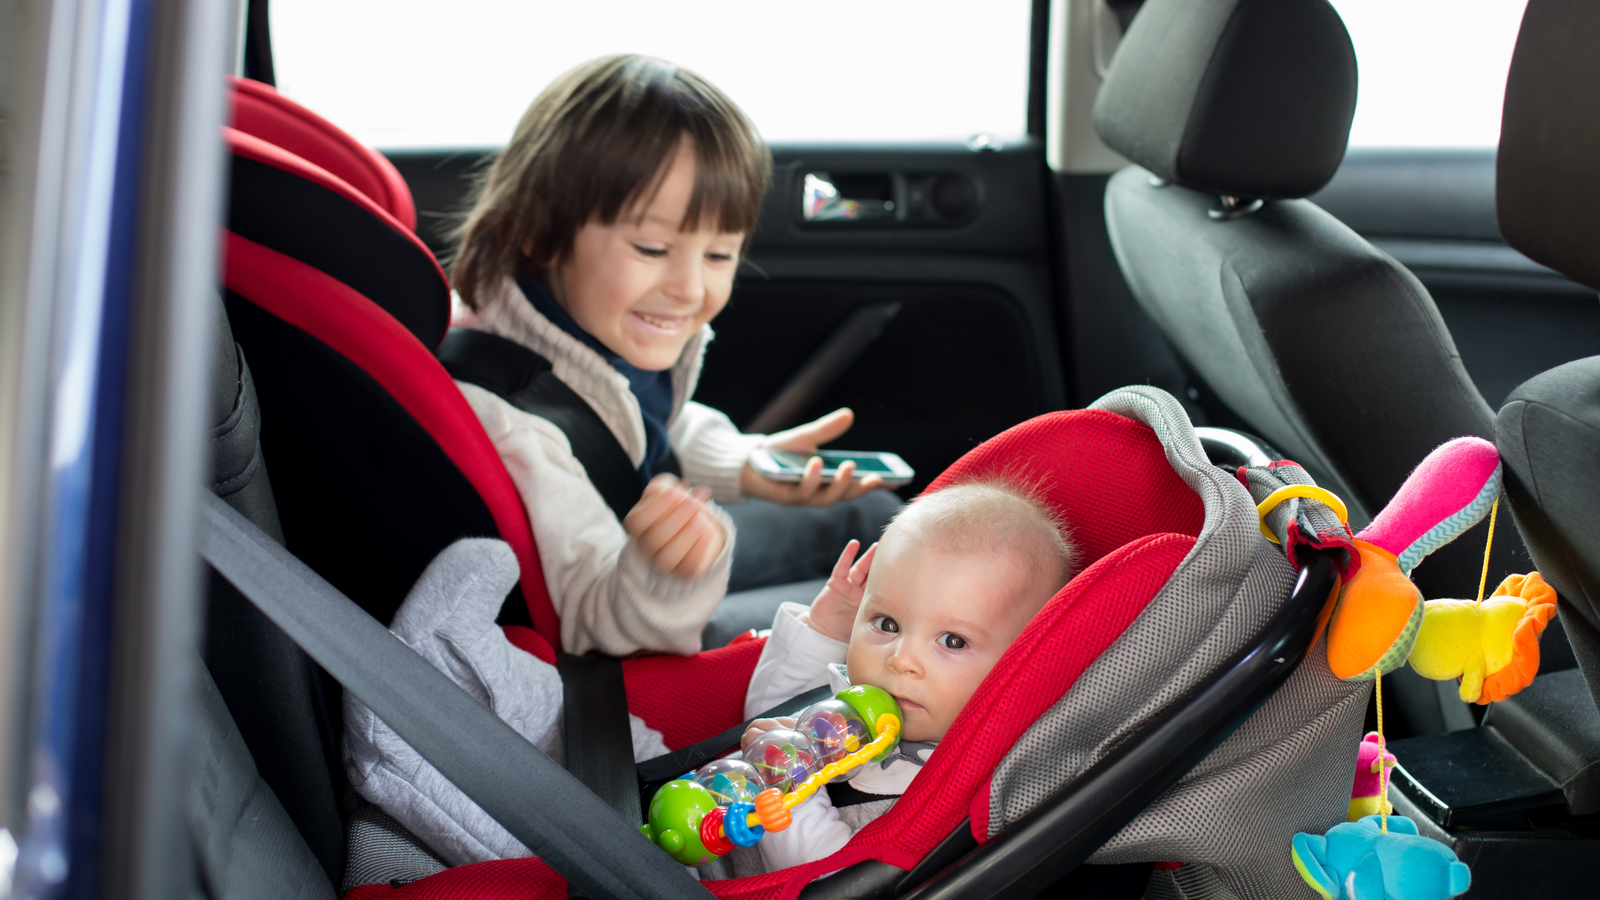 A toddler and a baby in their car seats.